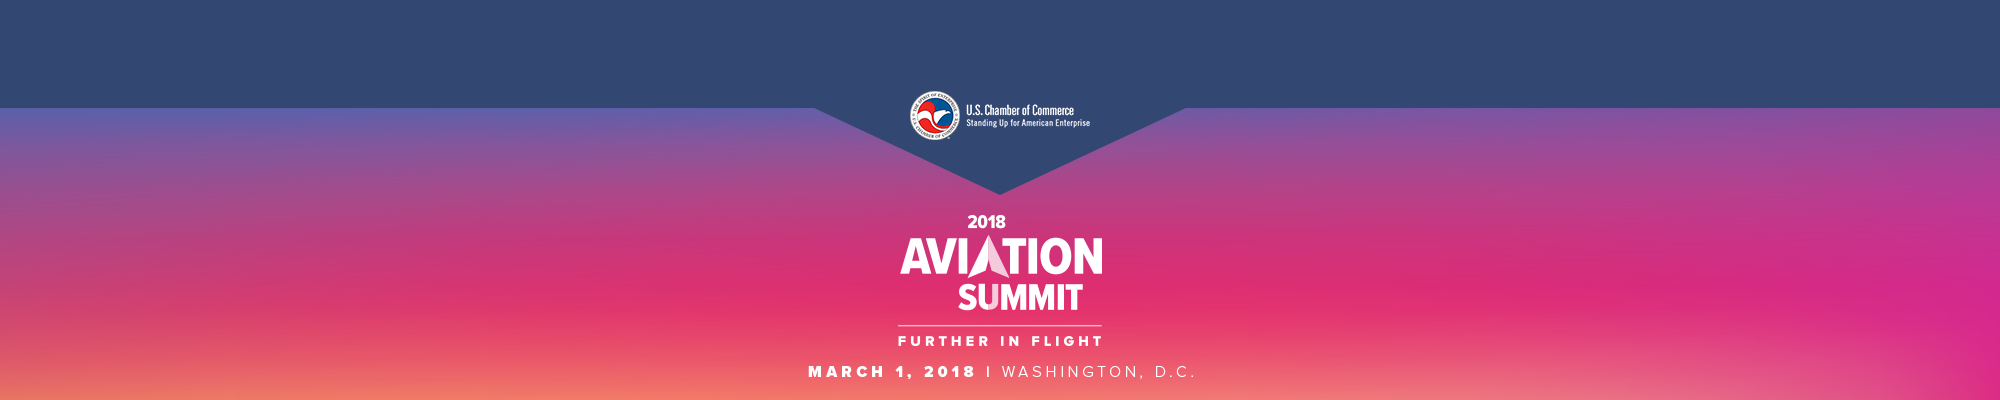 2018 Aviation Summit